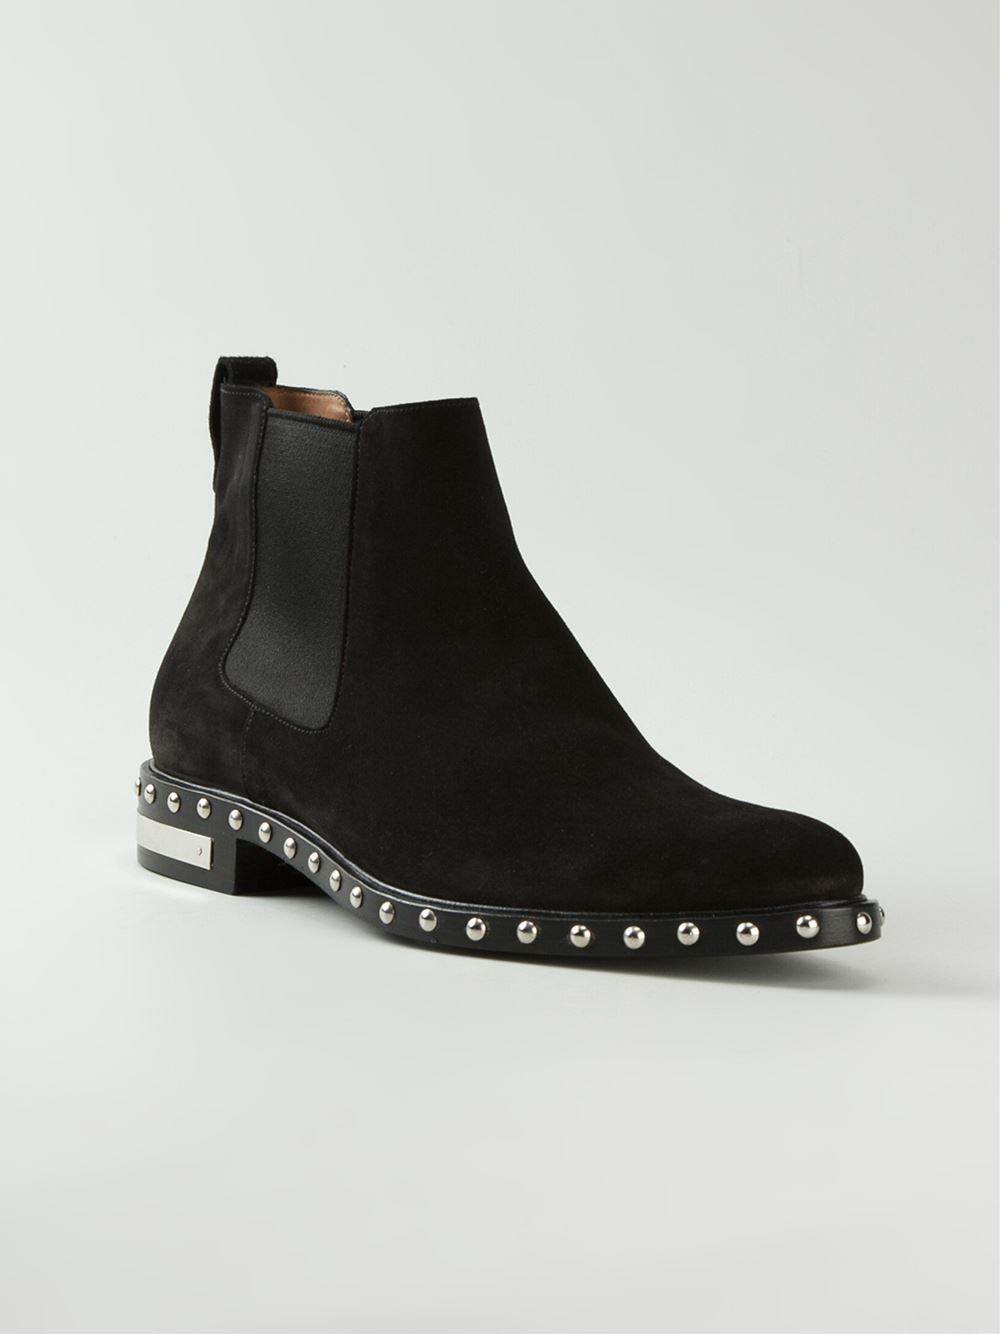 Givenchy Studded Chelsea Boots in Black